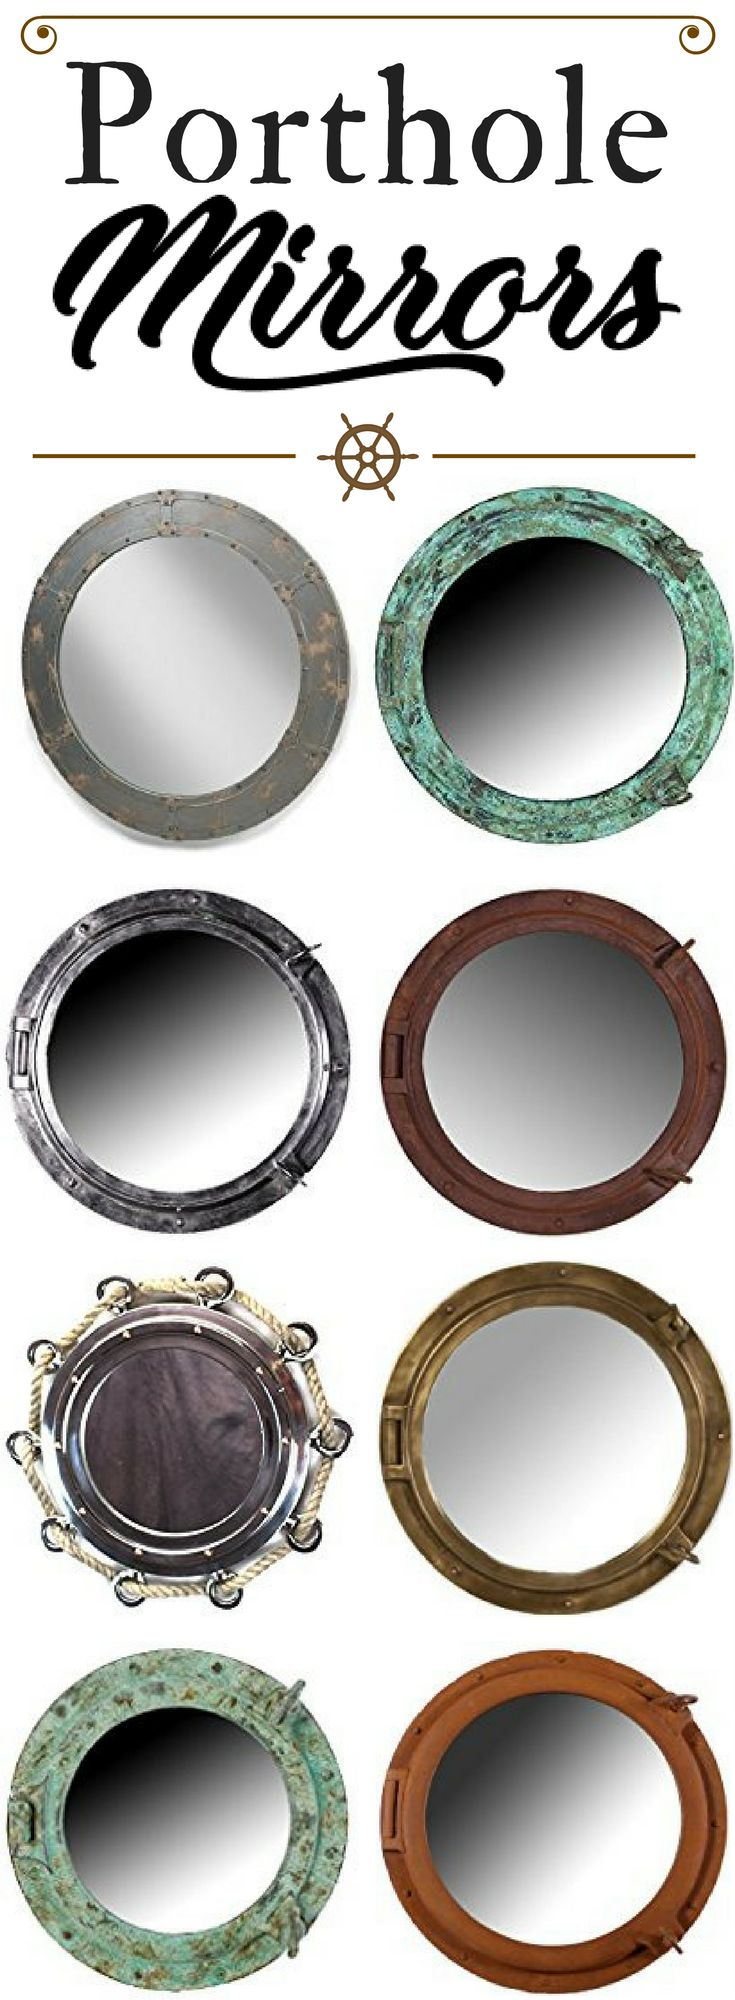 Porthole Mirrors! Check out the absolute best nautical porthole mirrors for sale at Beachfront Decor. Whether you need vintage, rustic, modern, brass, or rope porthole mirrors for your bathroom or living room, we have you covered.